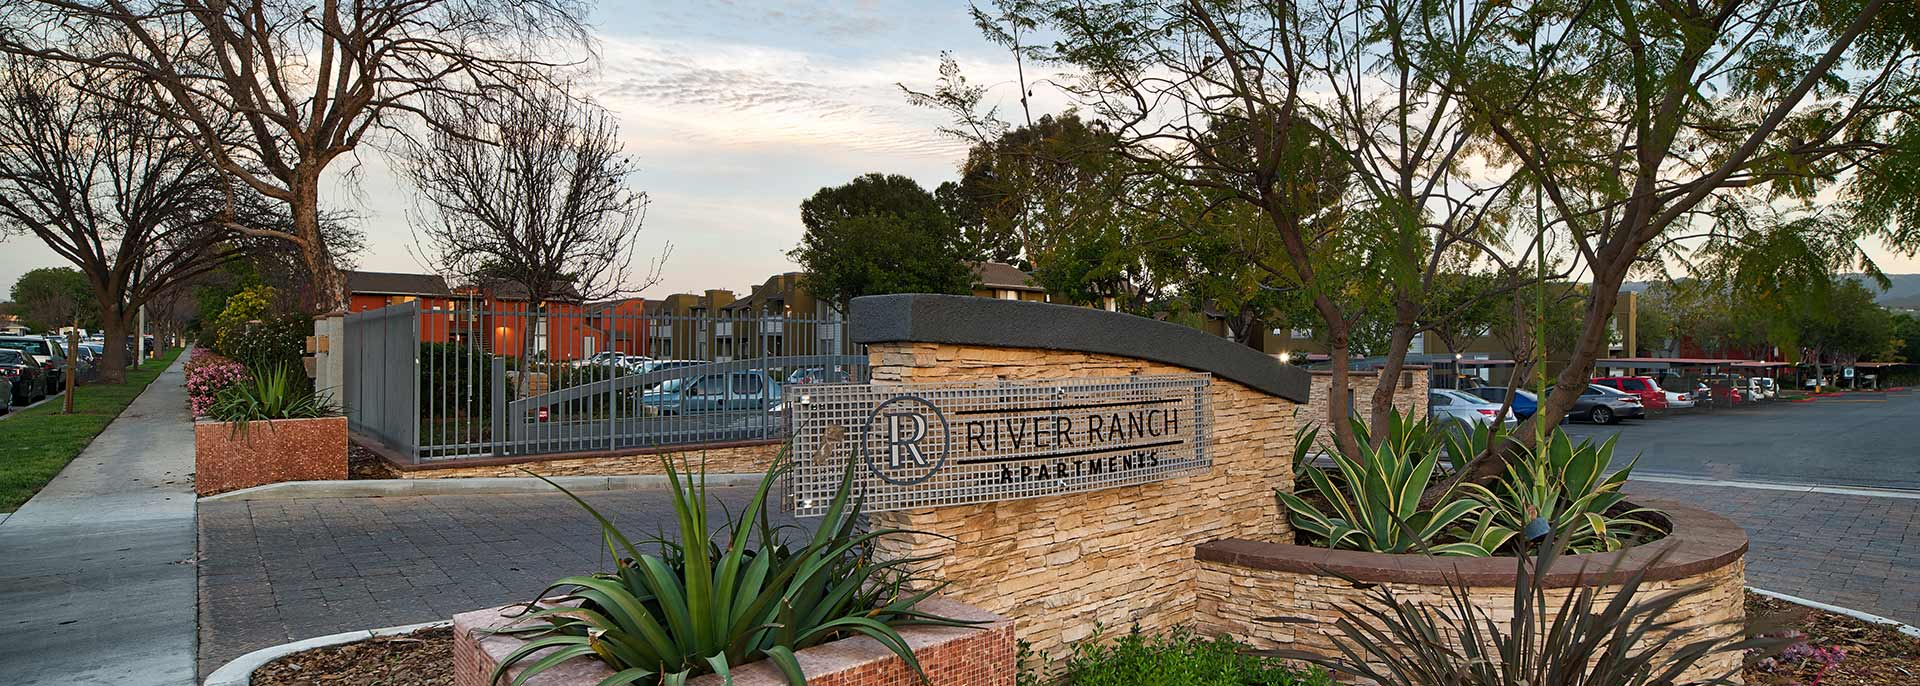 river ranch apartments simi valley apartments floor plans amp pricing decron 11519